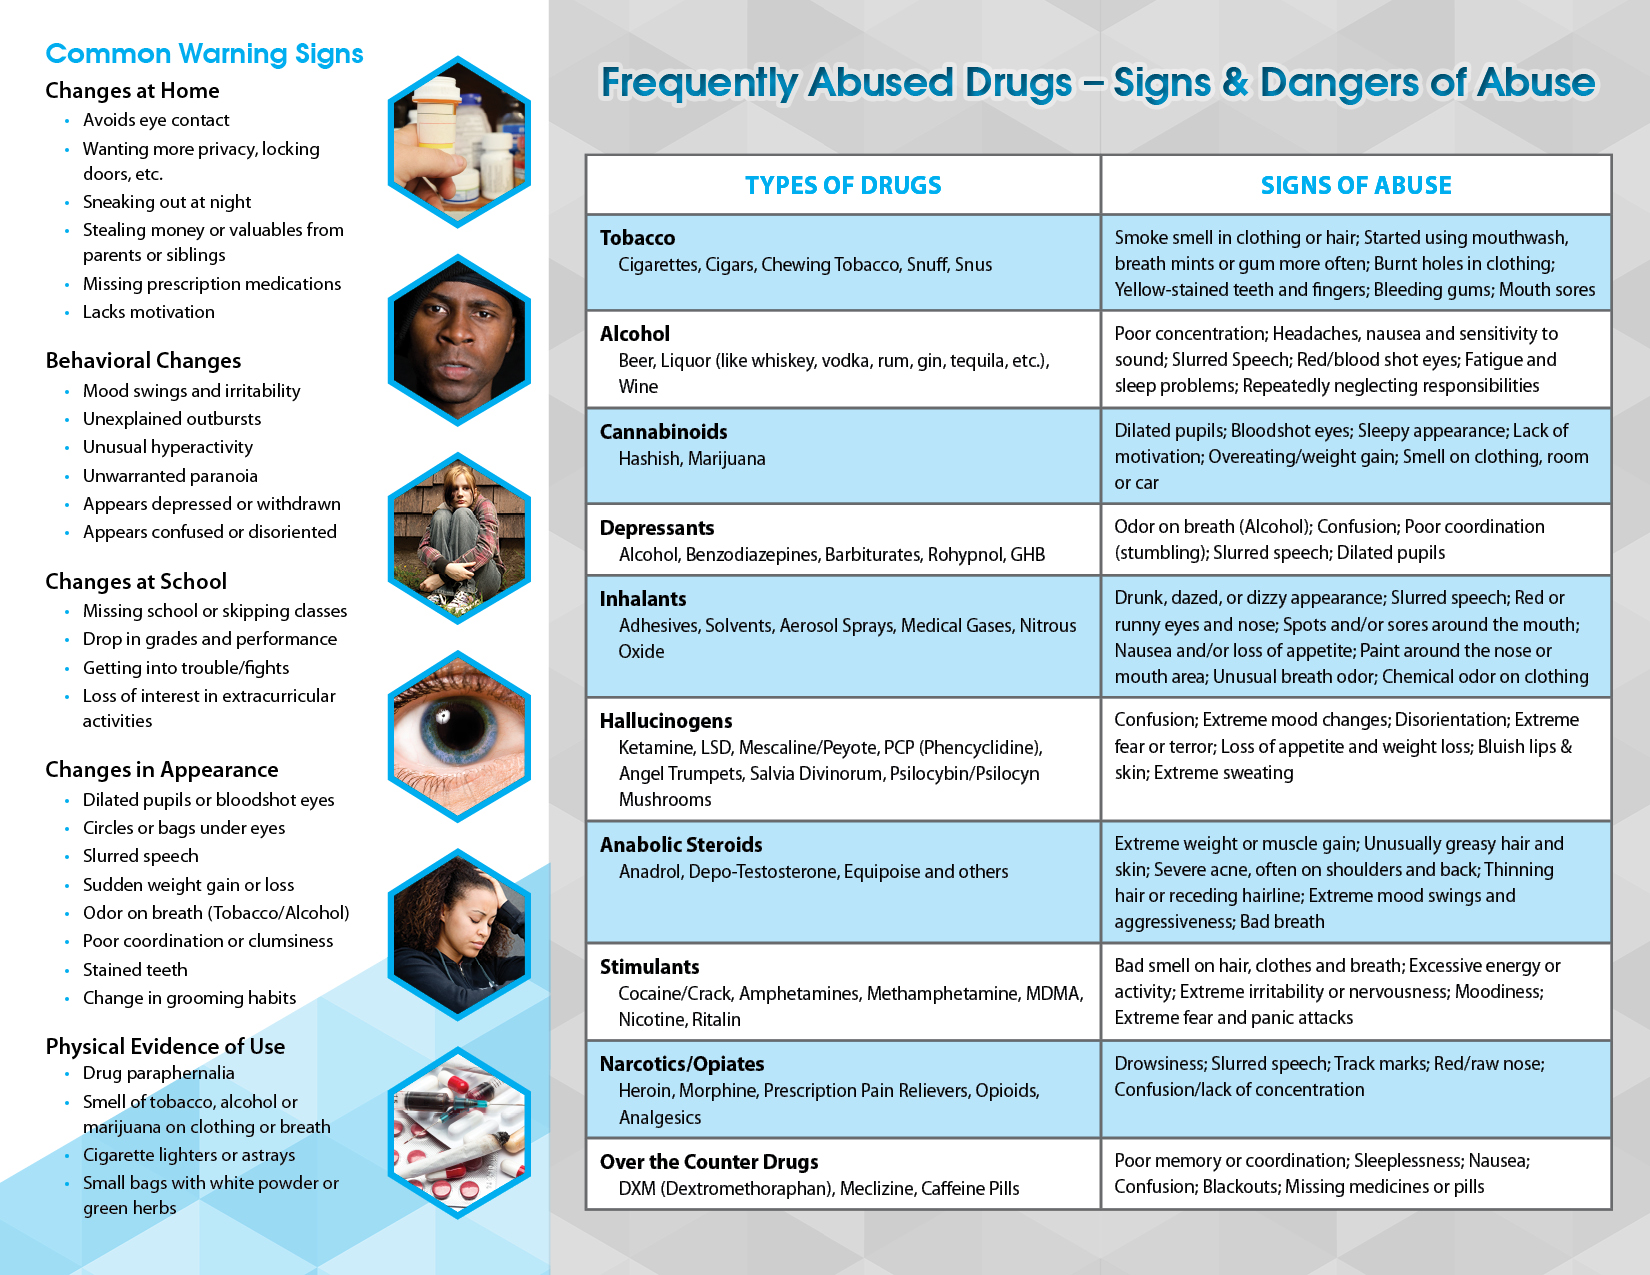 thesis on drug abuse prevention Outline of policy regarding drug abuse prevention and drug abuser treatment (5) an outline of agencies and organizations involved in drug related problems and (6.